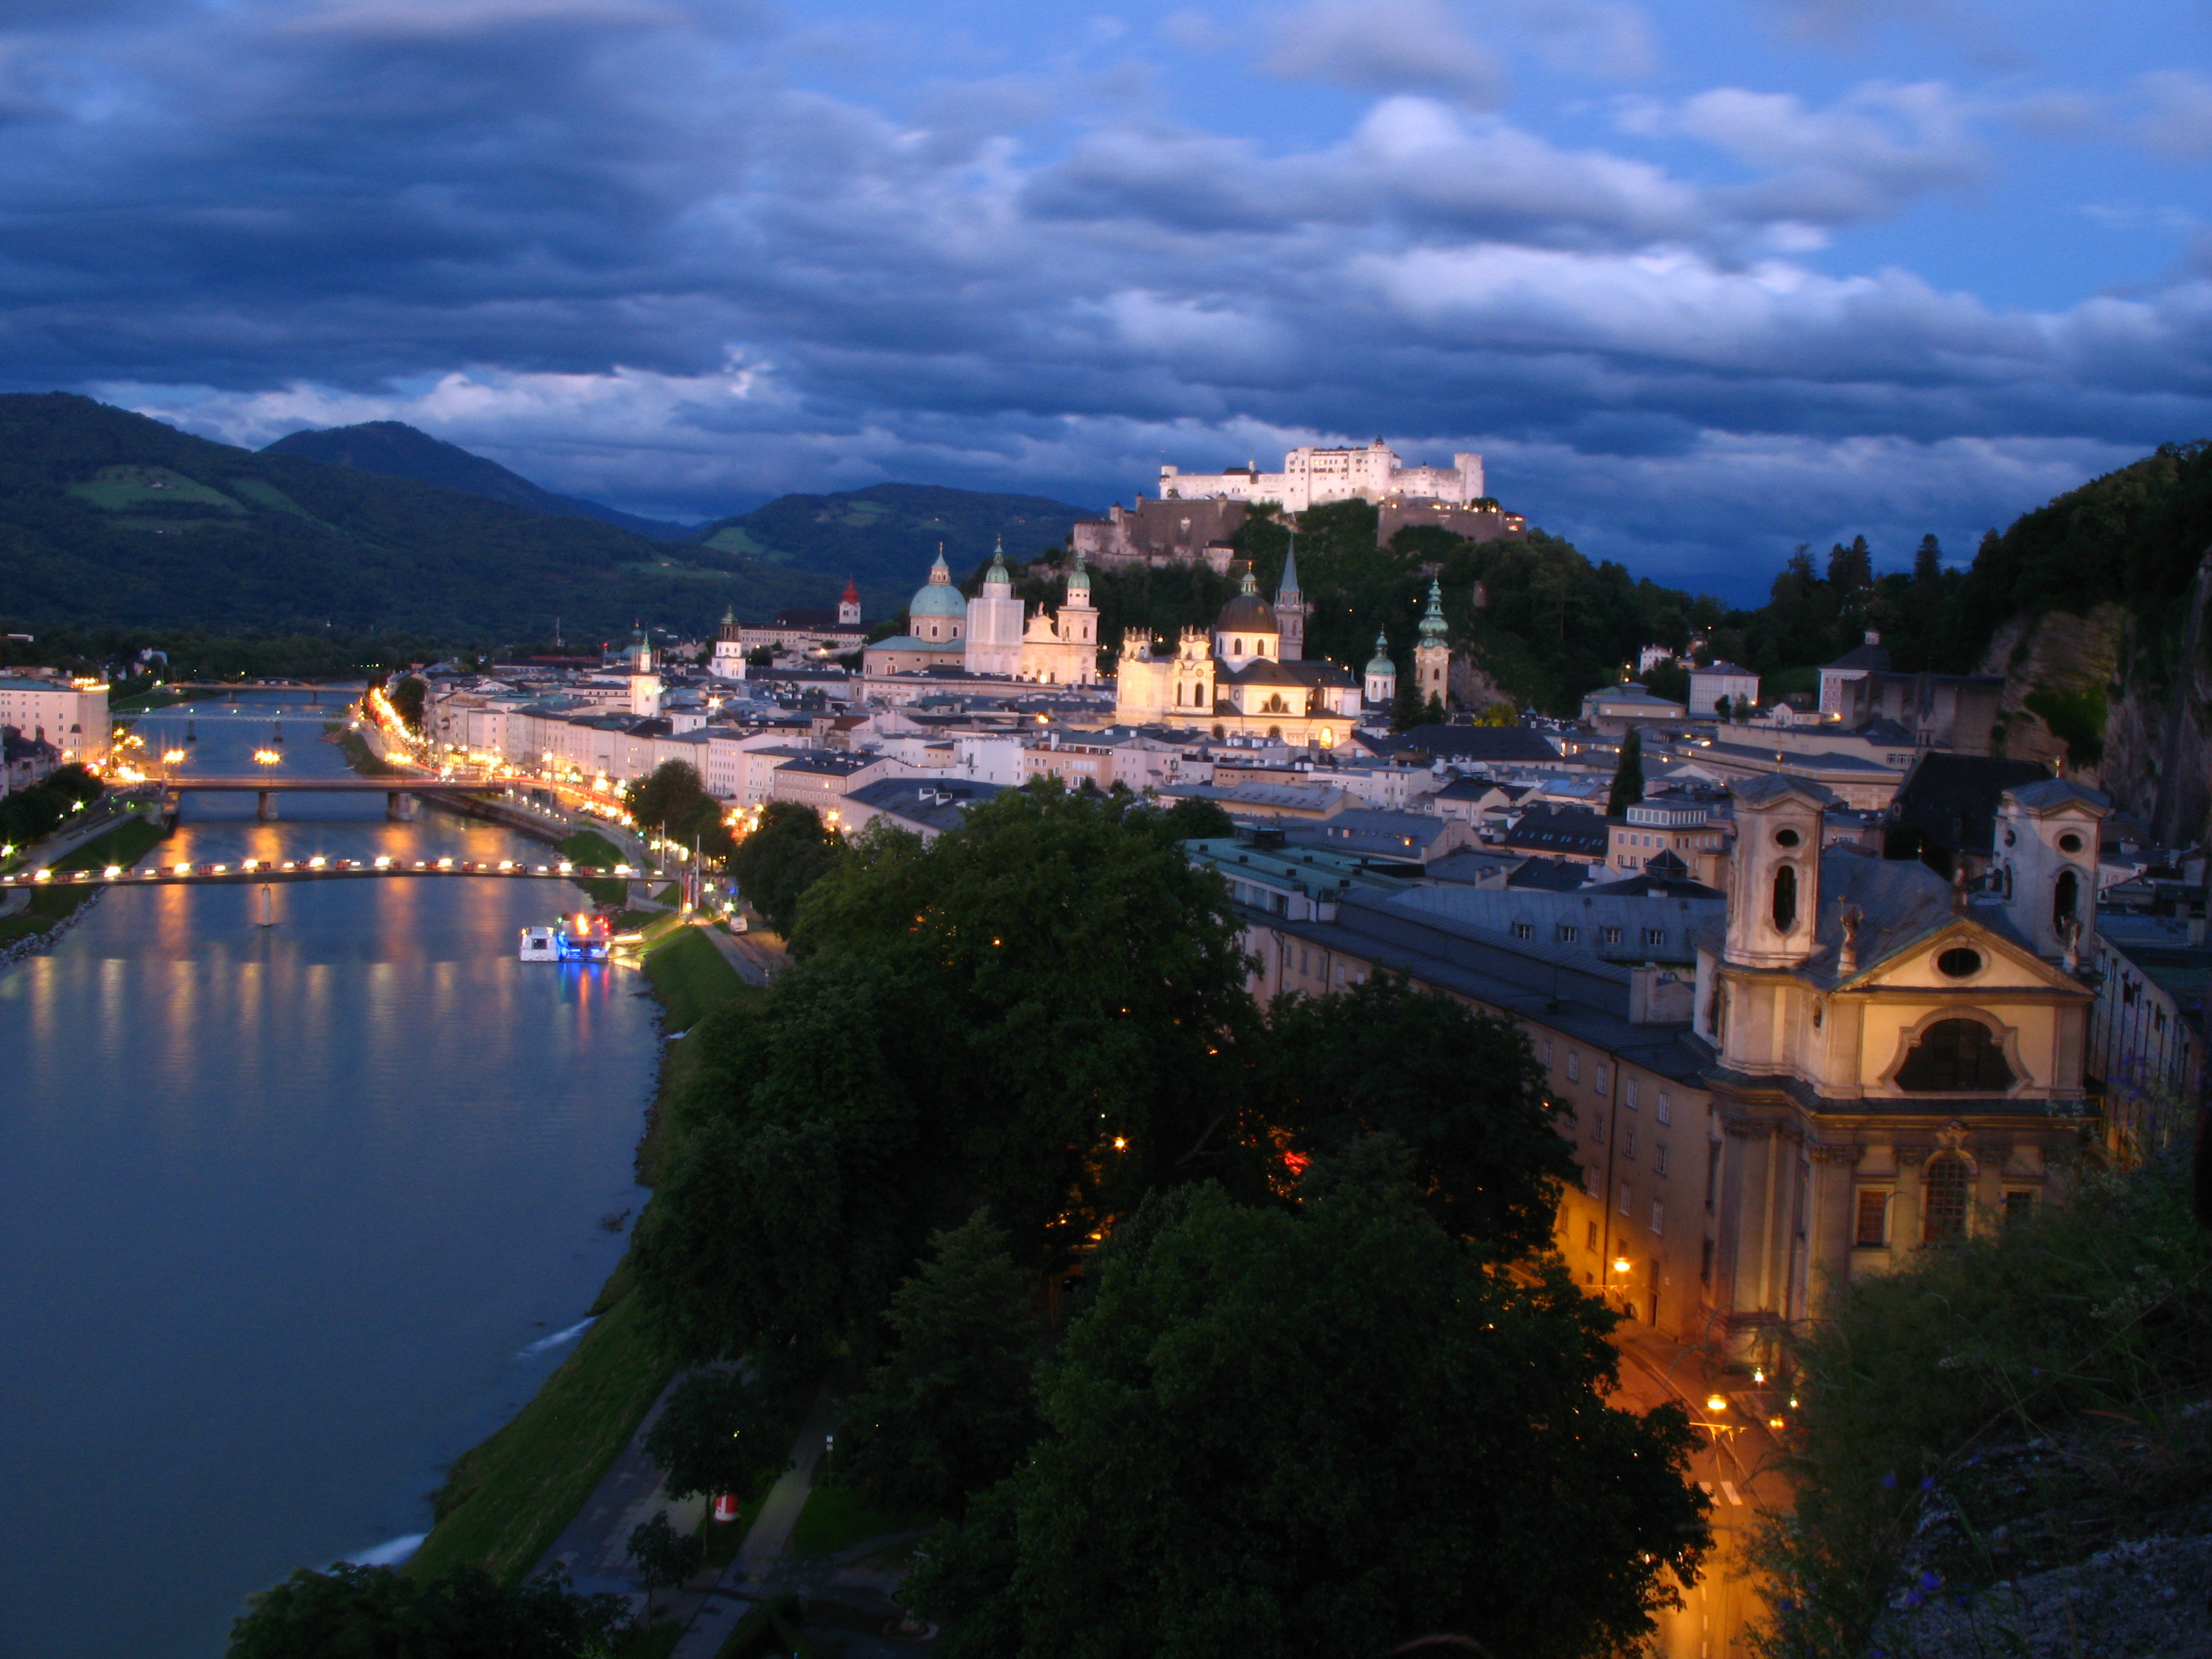 Download Night street in Salzburg Austria wallpapers and images 3648x2736